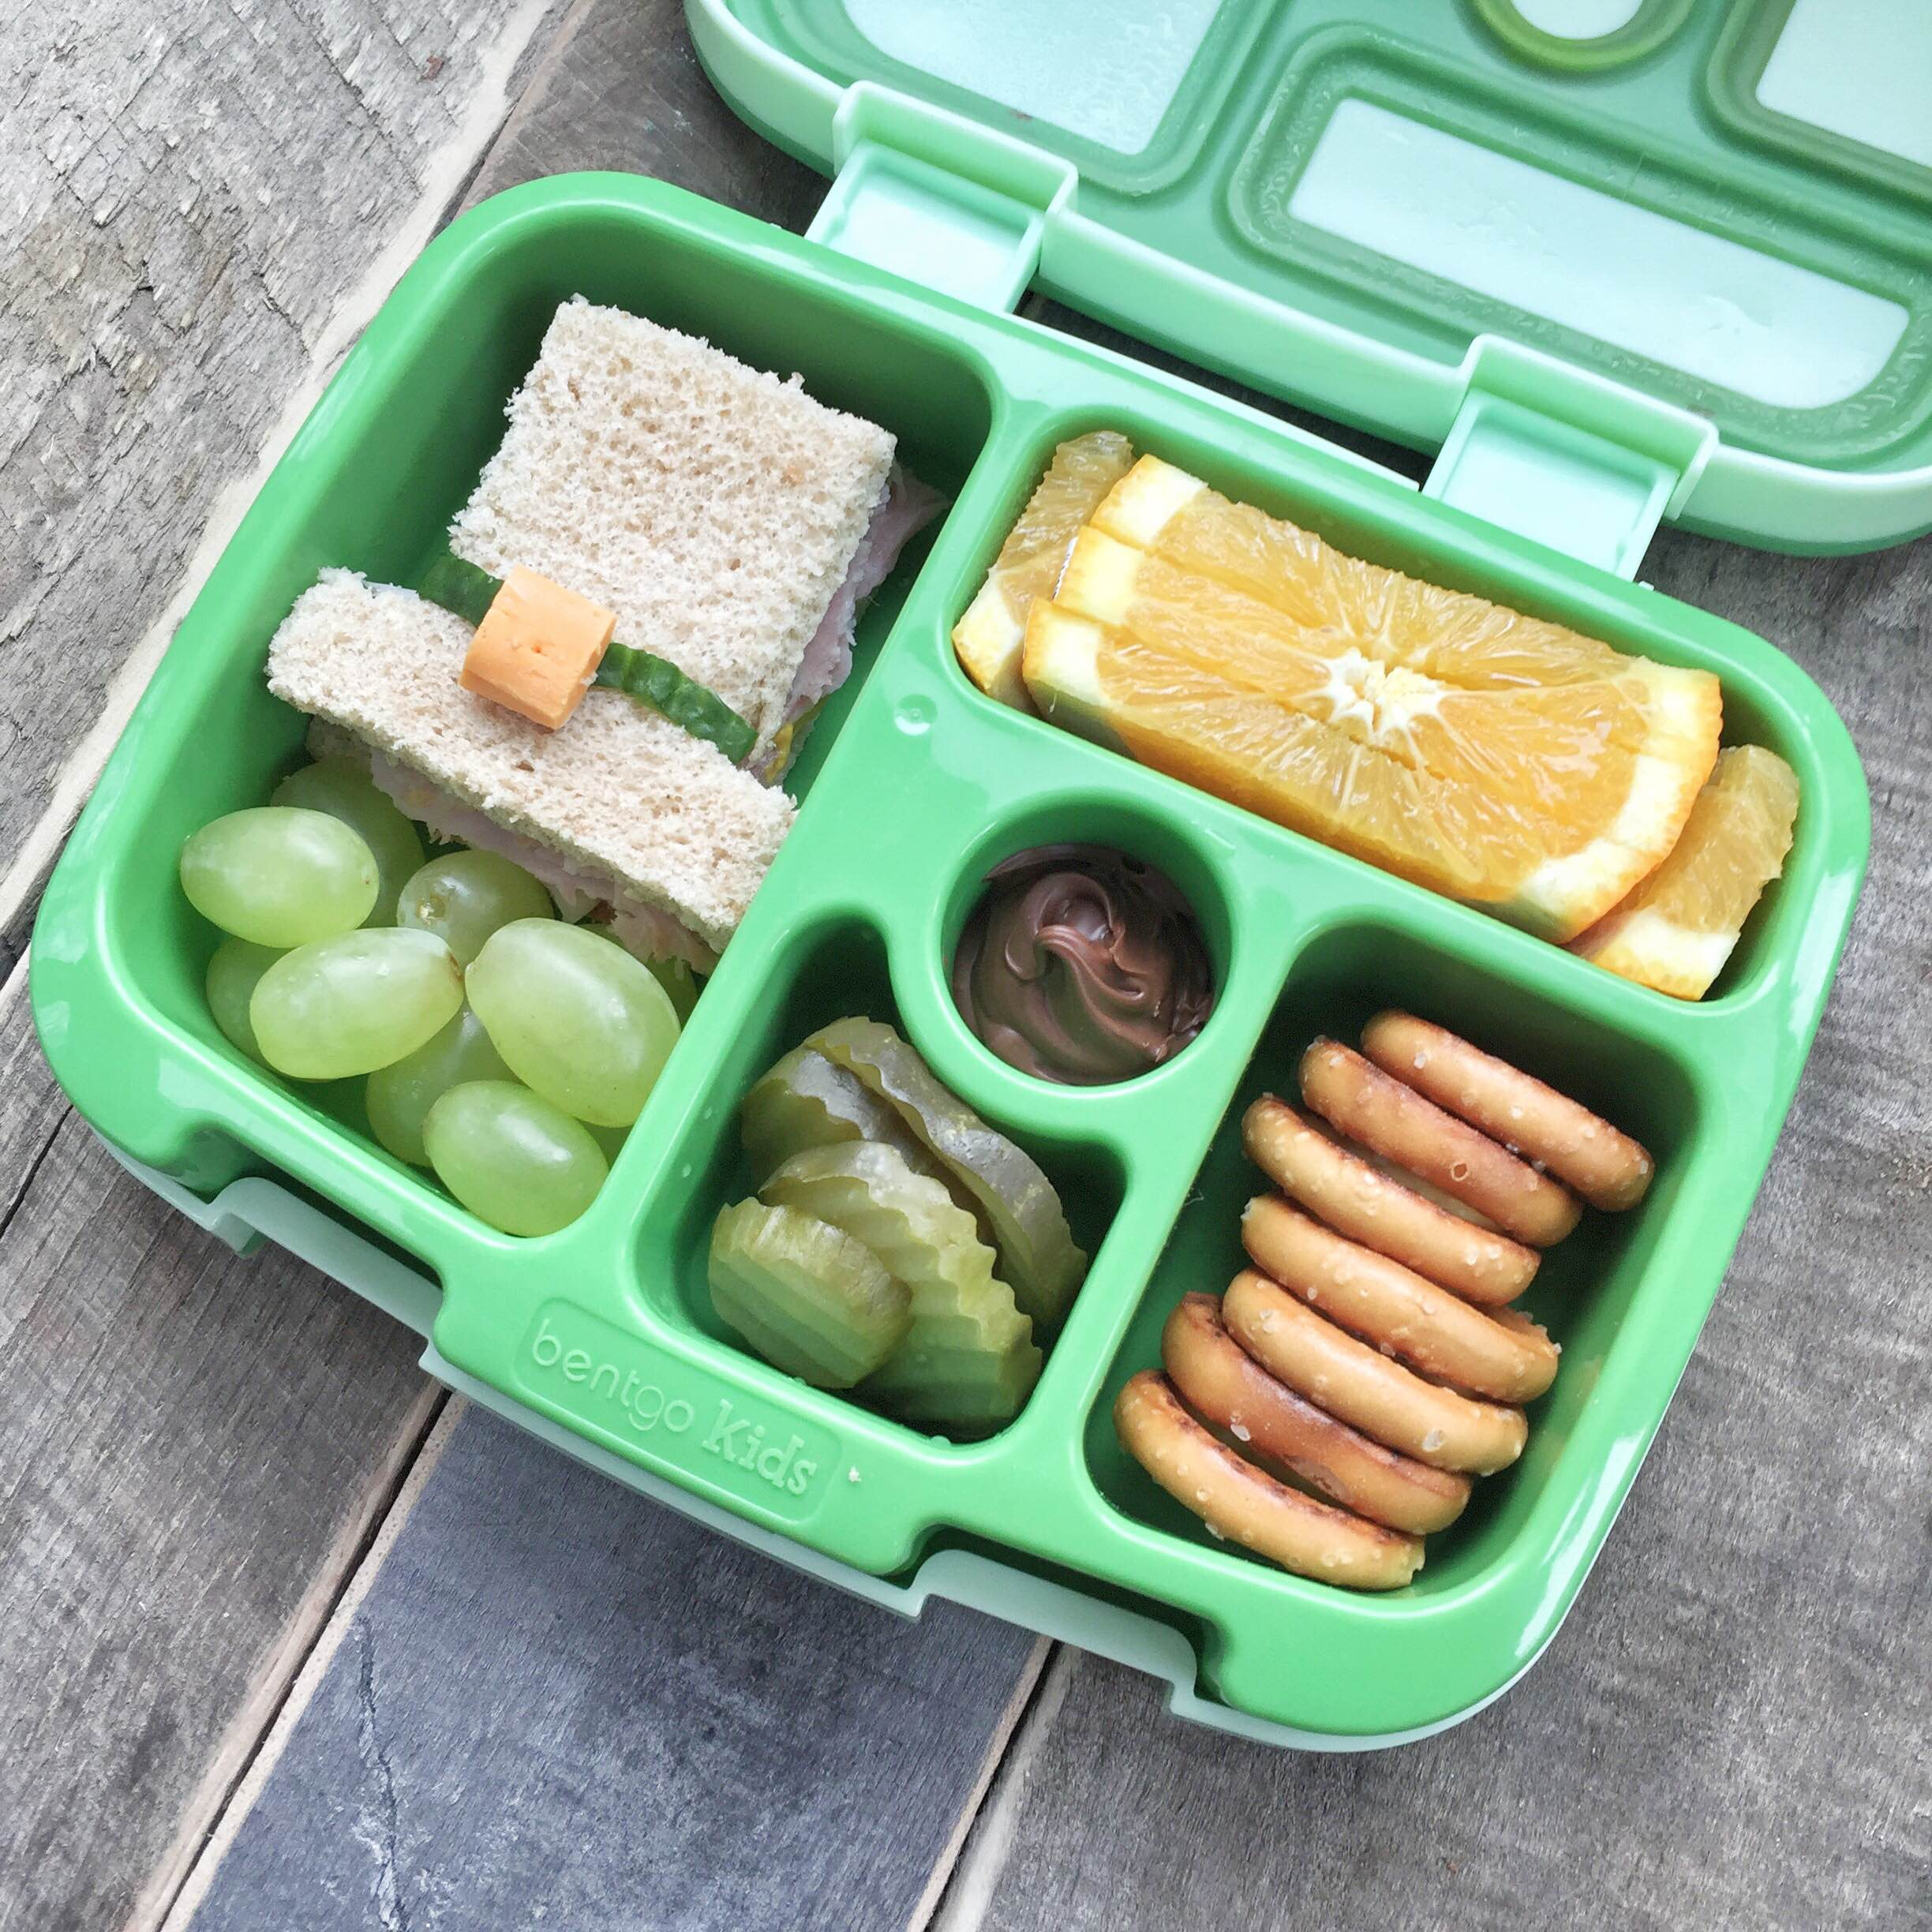 St. Patrick's Day bento lunch | St. Patrick's Day lunchbox ideas | Leprechaun lunchbox! GinaKirk.com @ginaekirk